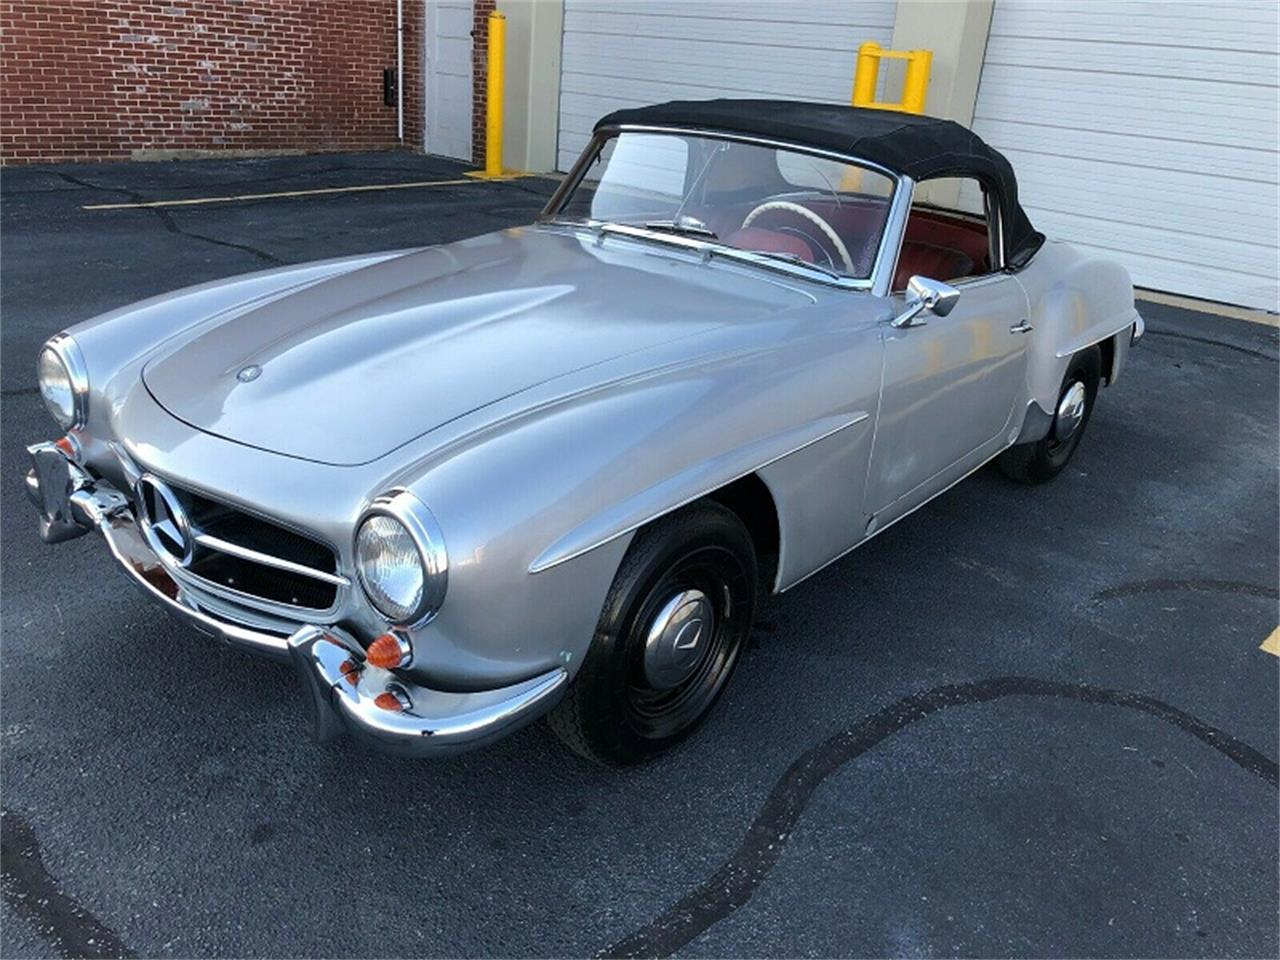 for sale 1958 mercedes-benz sl-class in los angeles, california cars - los angeles, ca at geebo